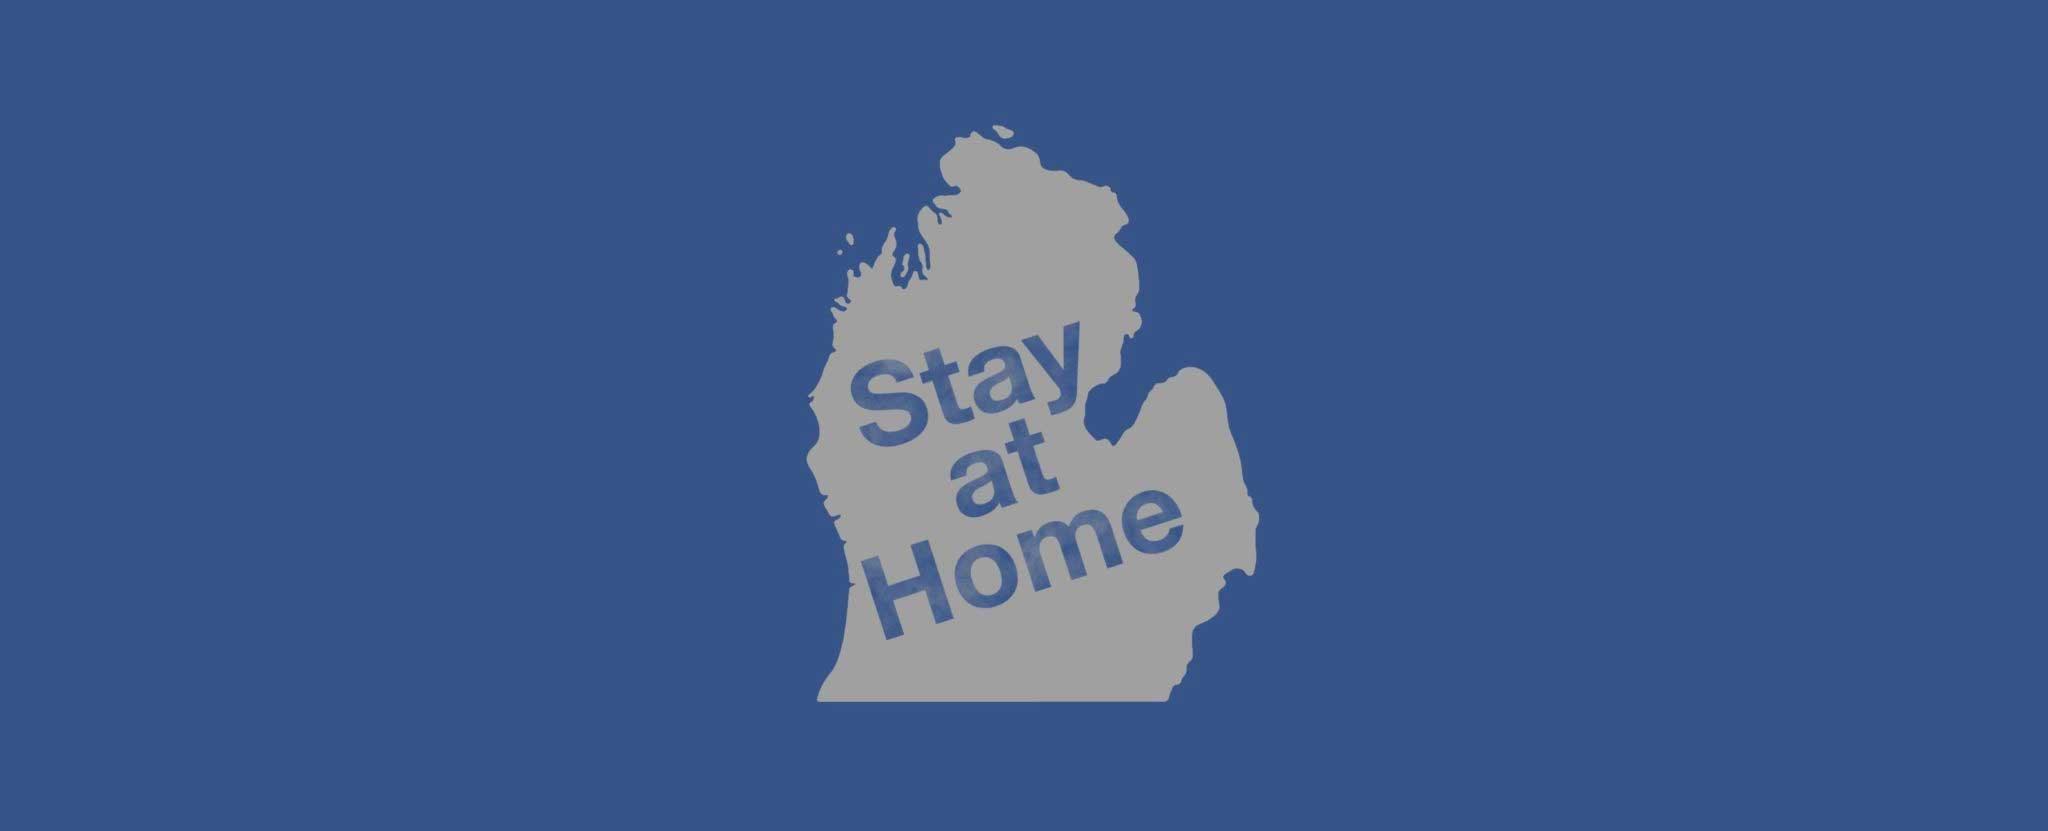 Violating Michigan's New Stay-At-Home Order is a Crime